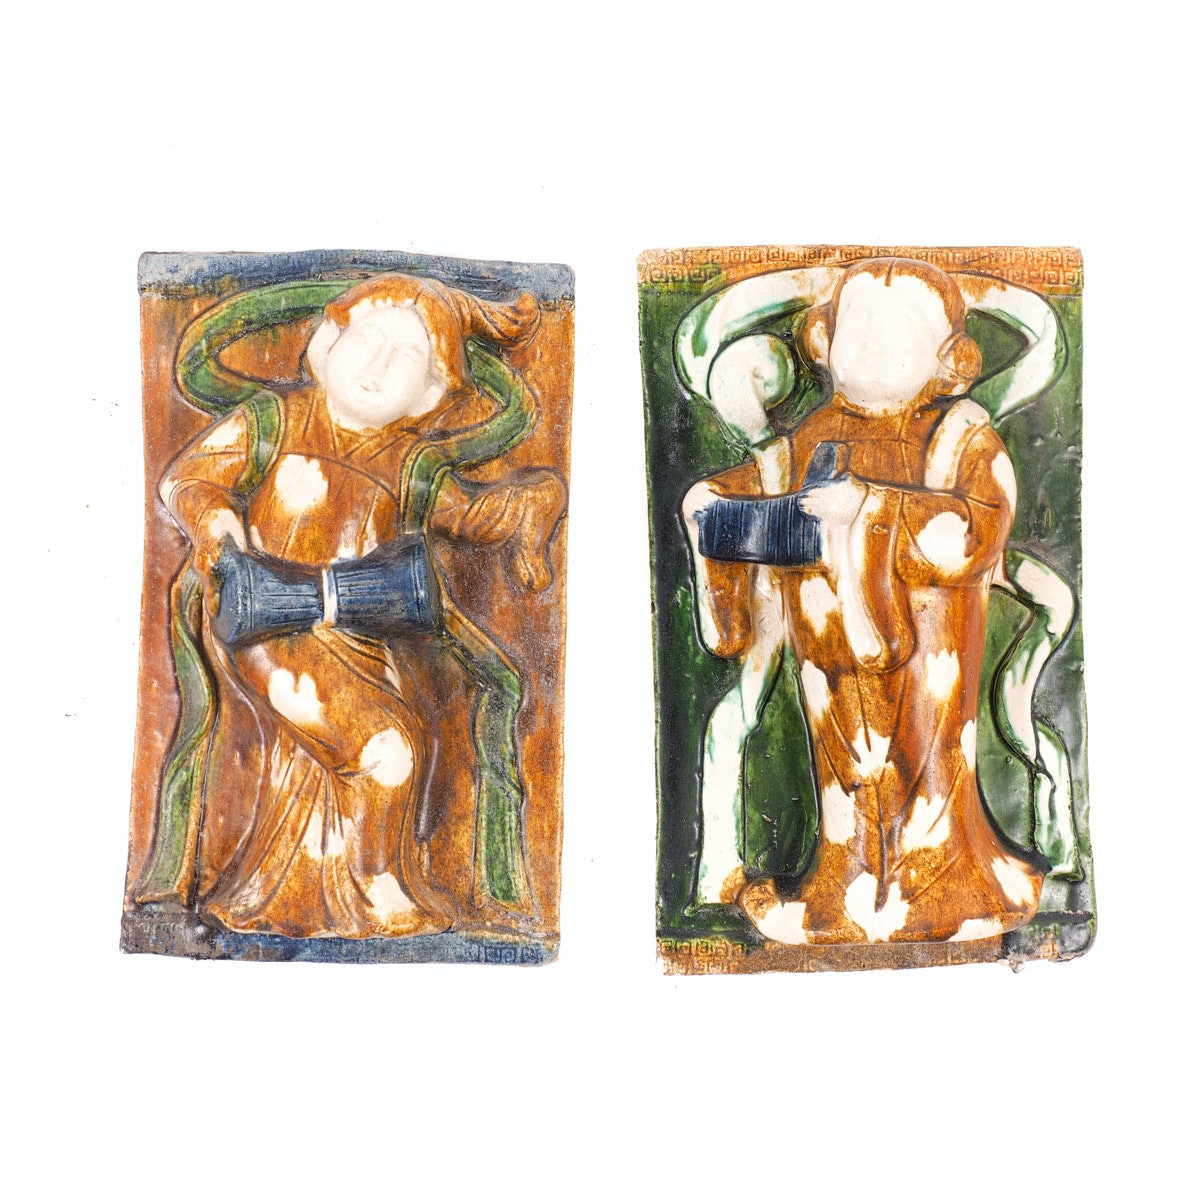 Set of Two Vintage Chinese Ceramic Figural Tiles